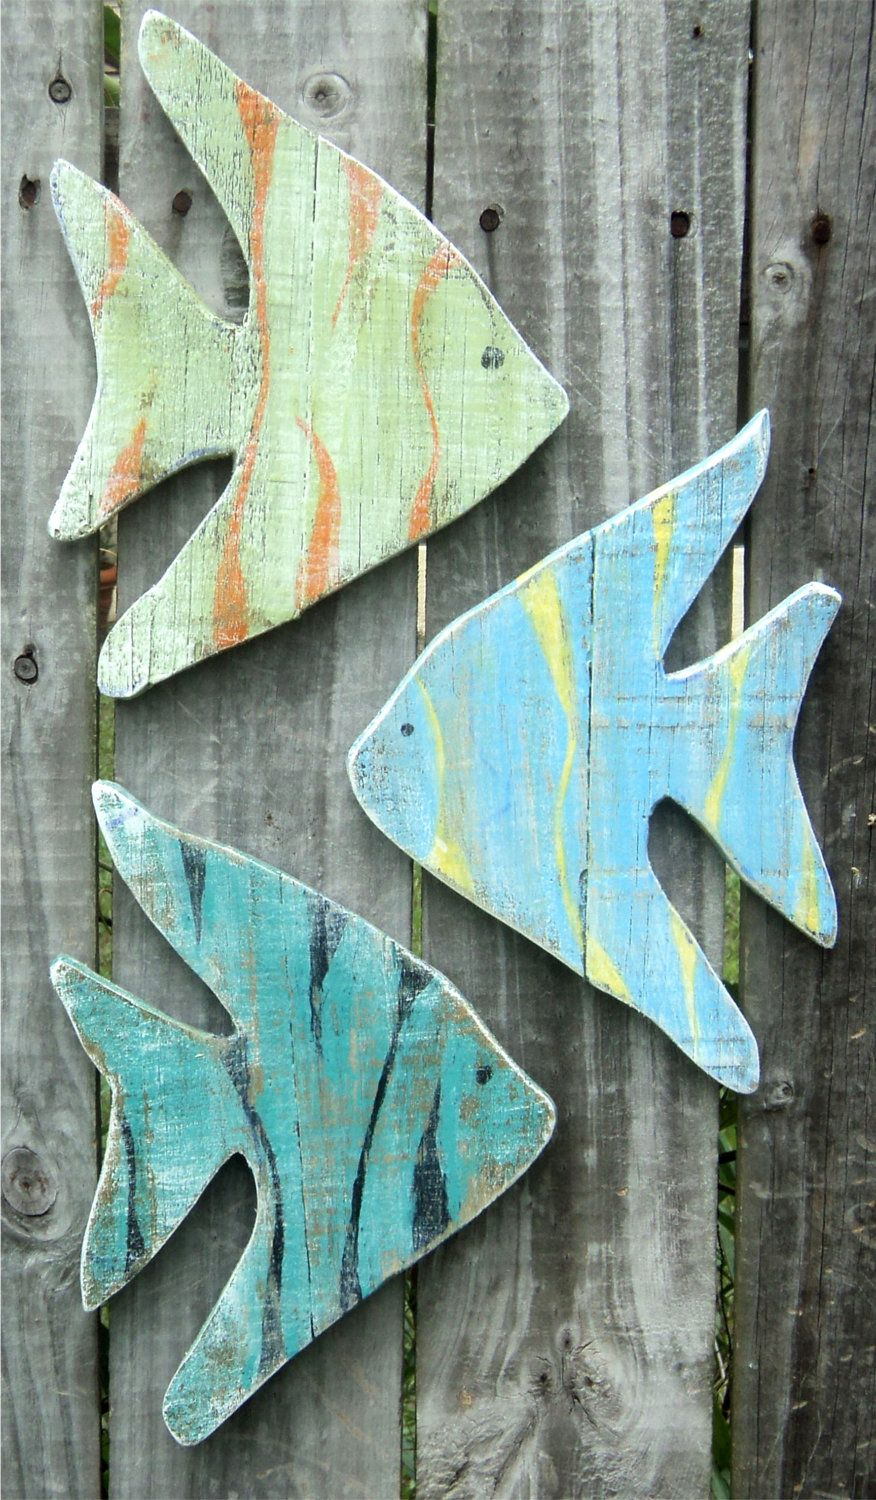 Lake House Wall Art beach-y wooden angel fish, casual cottage decor, lake house wall